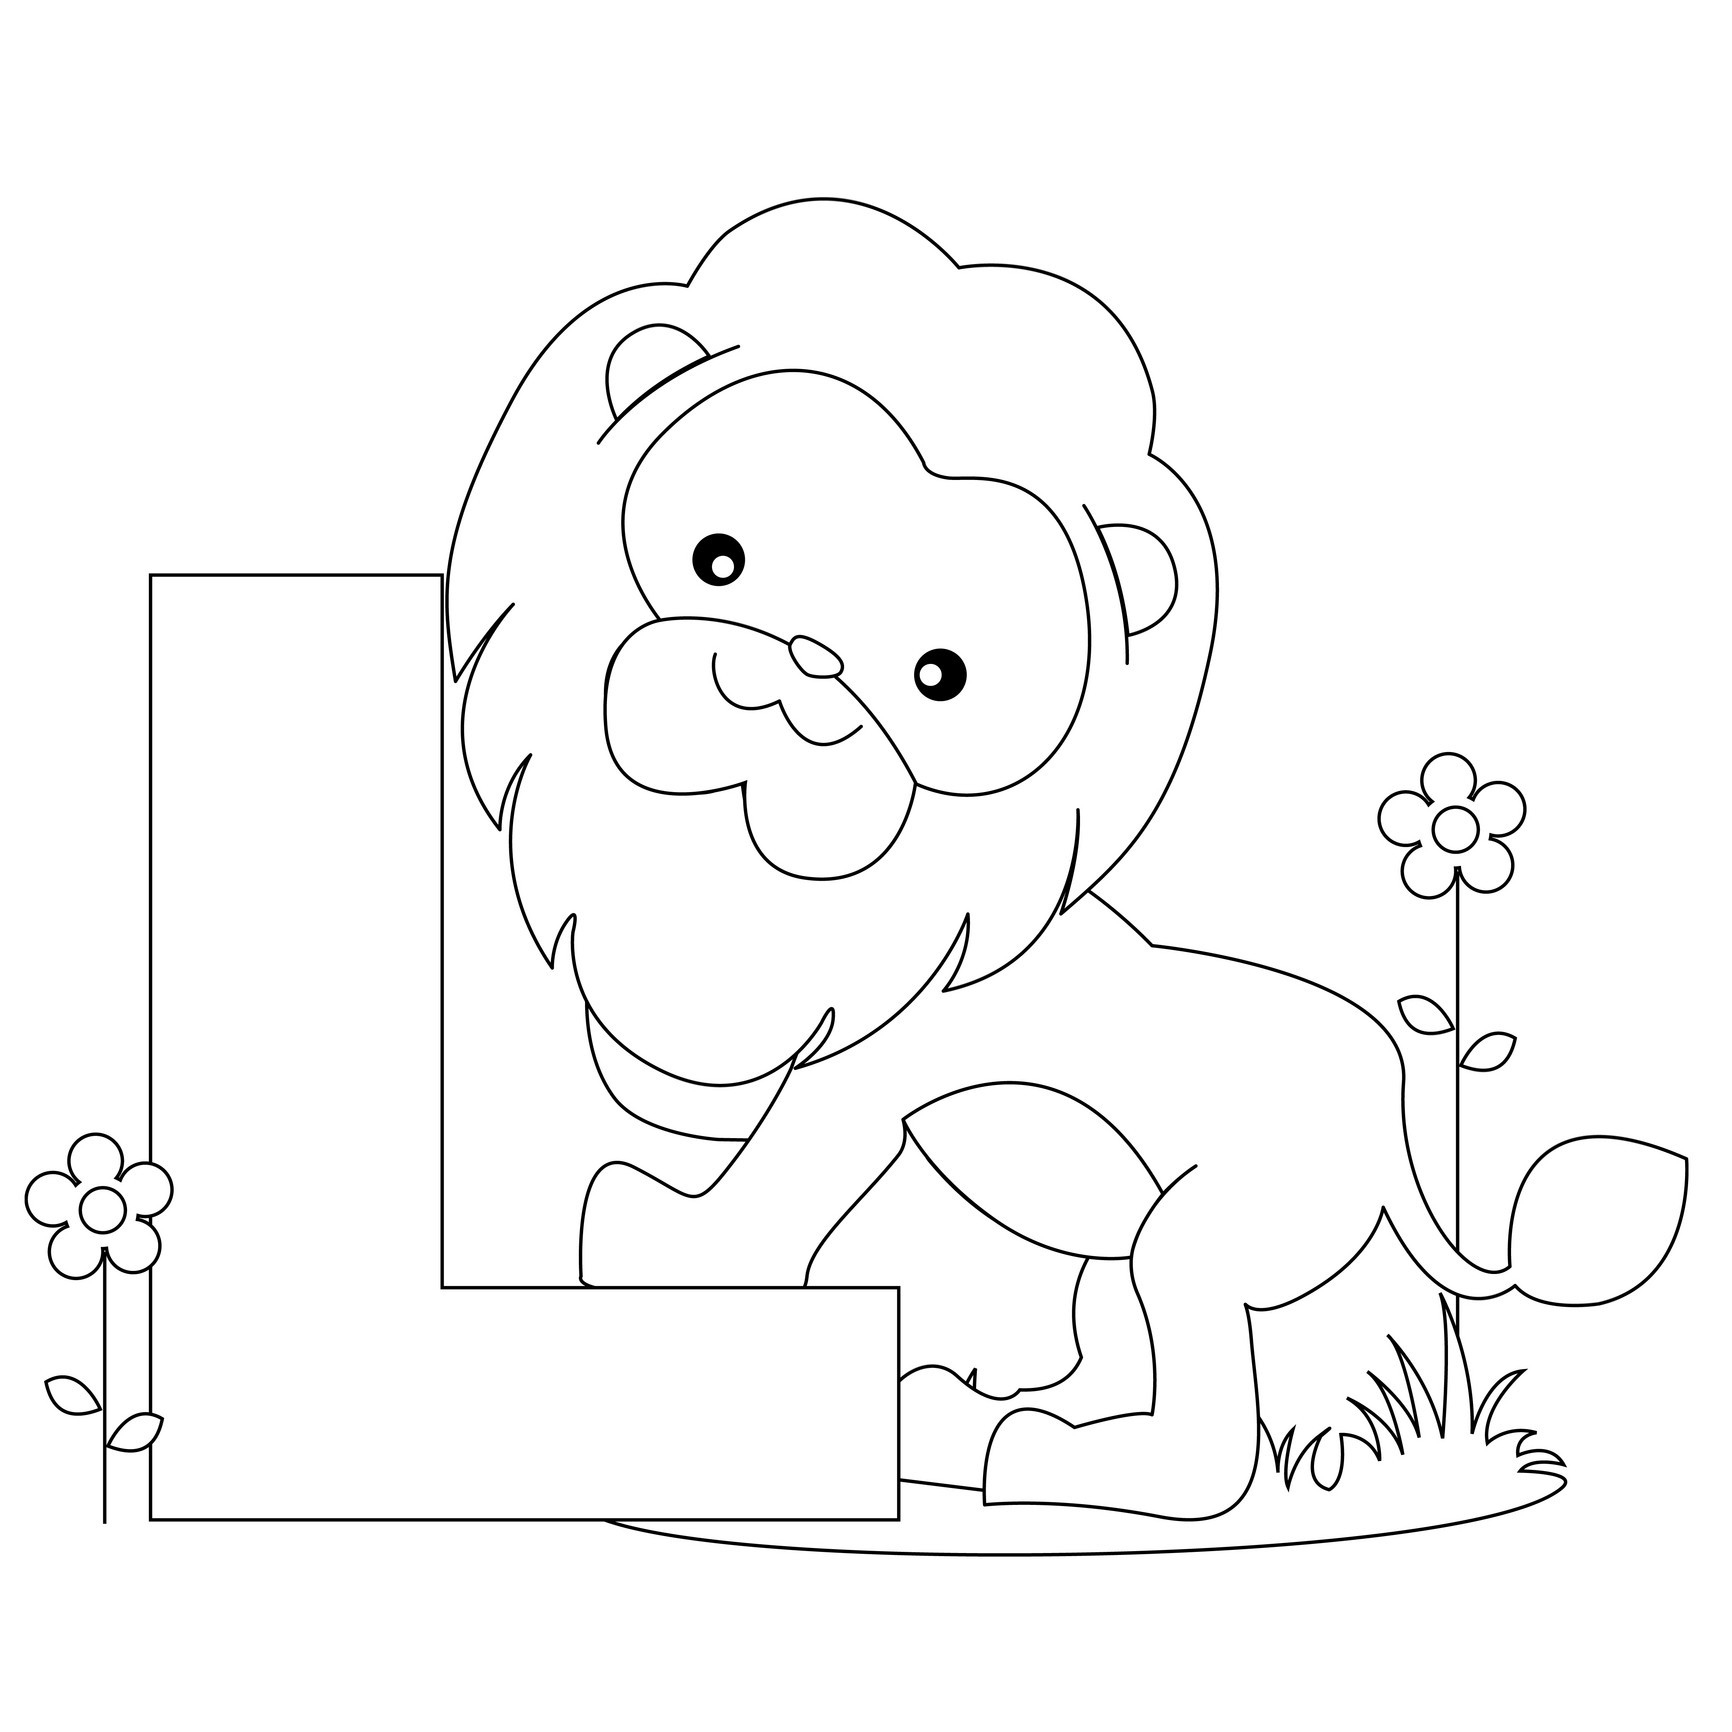 free printable alphabet coloring pages whole alphabet coloring pages free printable coloring home coloring pages free alphabet printable